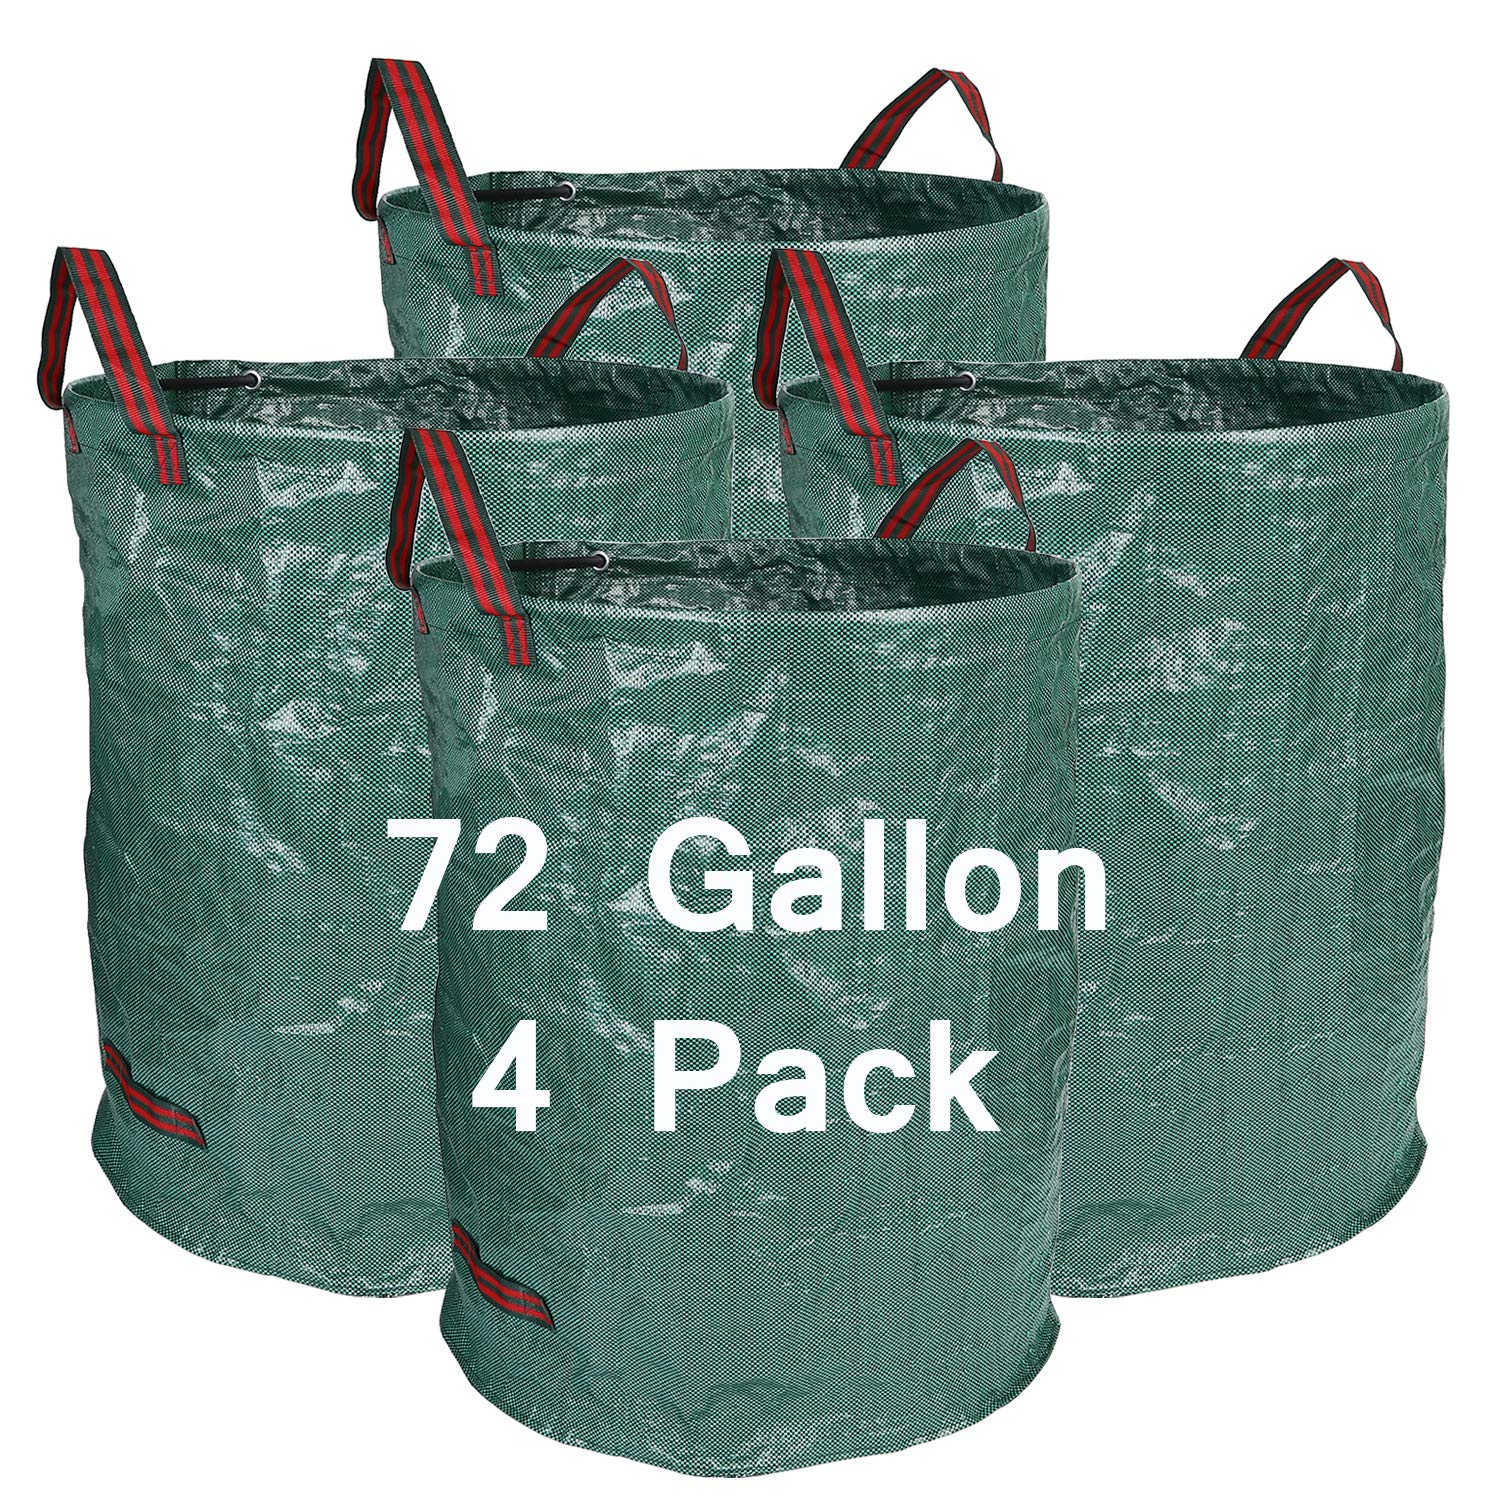 8d6bcf542c1 Hengu 4 Pack 72 Gallon Garden Bags Durable Reusable Yard Waste Bags Leaf  Waste Trash Container